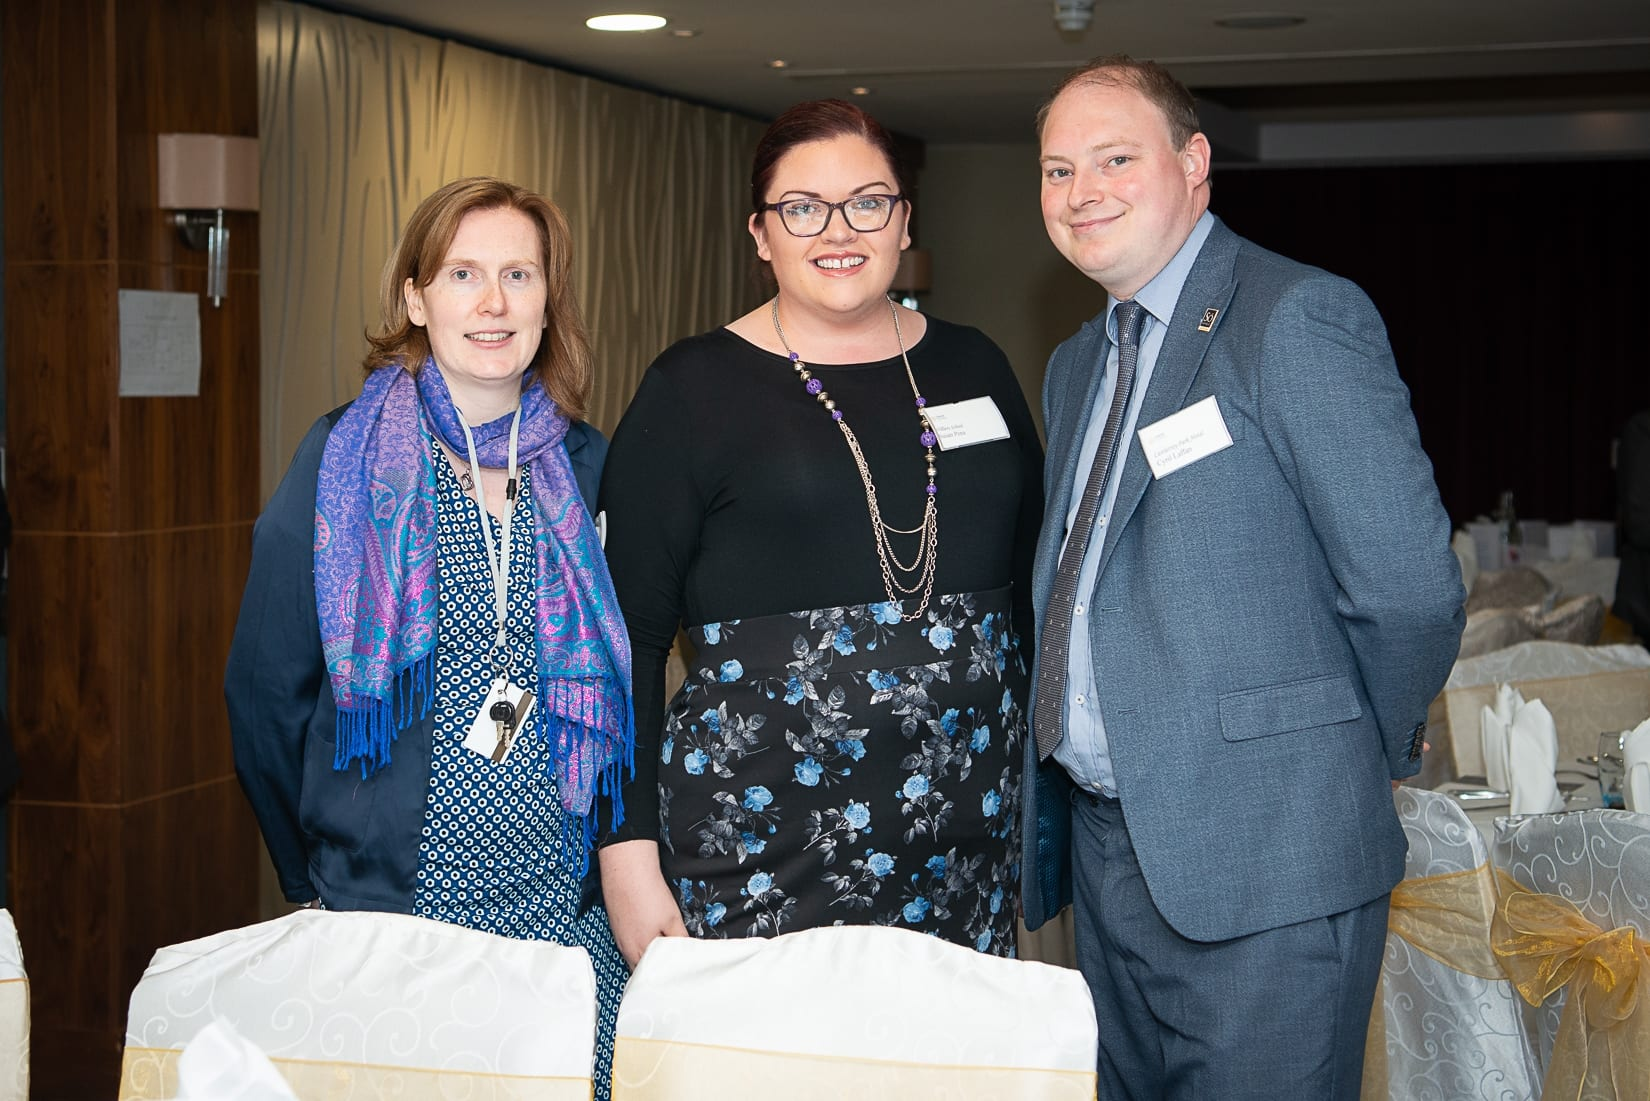 No repro fee-Limerick Chamber Autumn Luncheon which was held in The Savoy Hotel on Monday 23rd September - From Left to Right: Anne Marie Nash - The Strand Hotel, Susan Pera - Villers School, Cyril Laffan - Castletroy Park Hotel,  Photo credit Shauna Kennedy